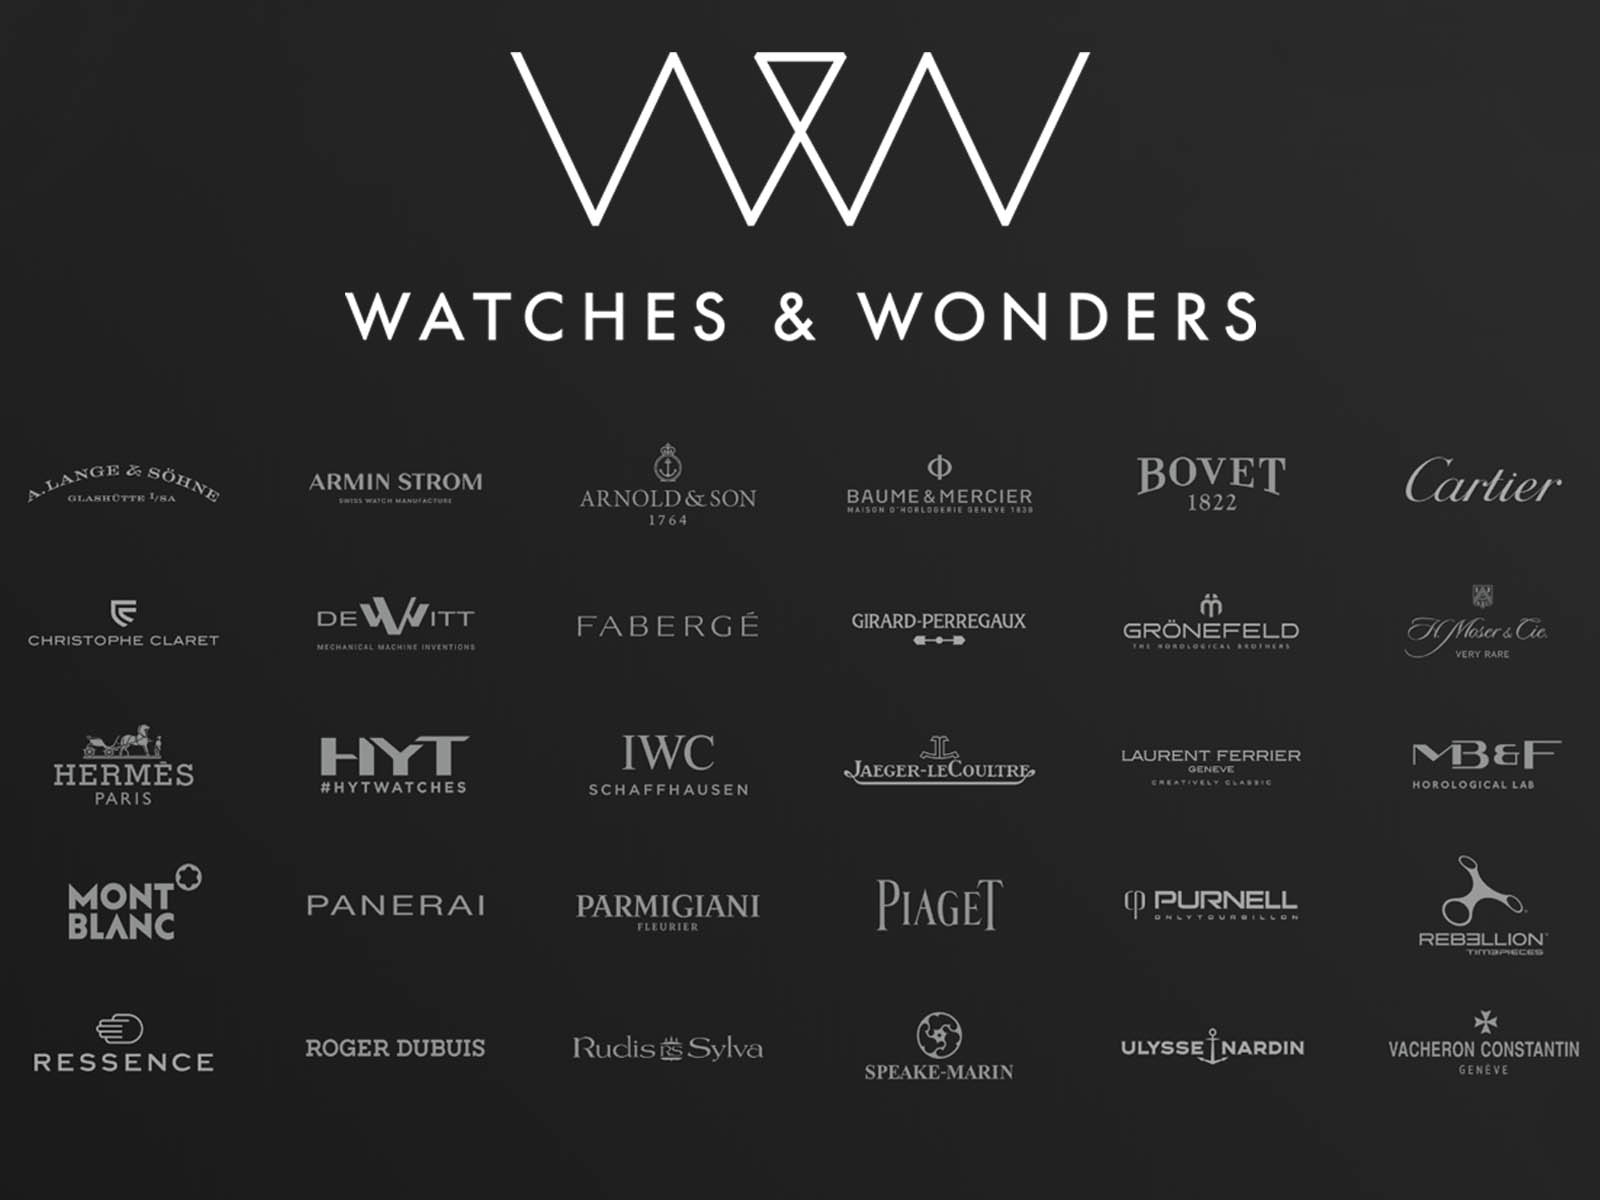 watches-wonders-2020-online-2.jpg